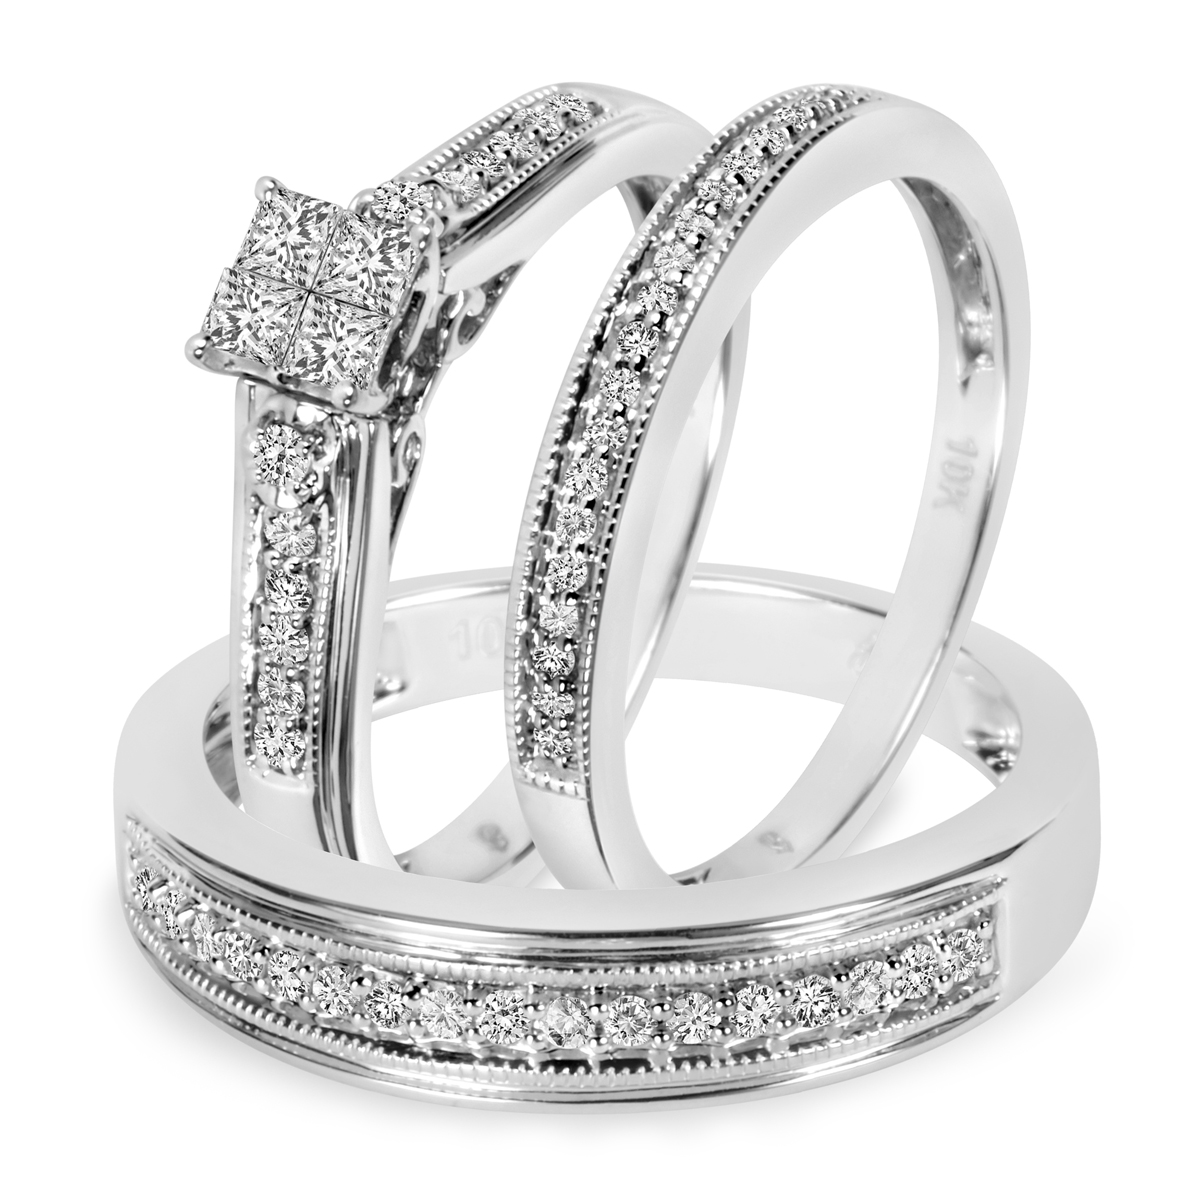 1/2 Carat T.W. Diamond Trio Matching Wedding Ring Set 10K White Gold